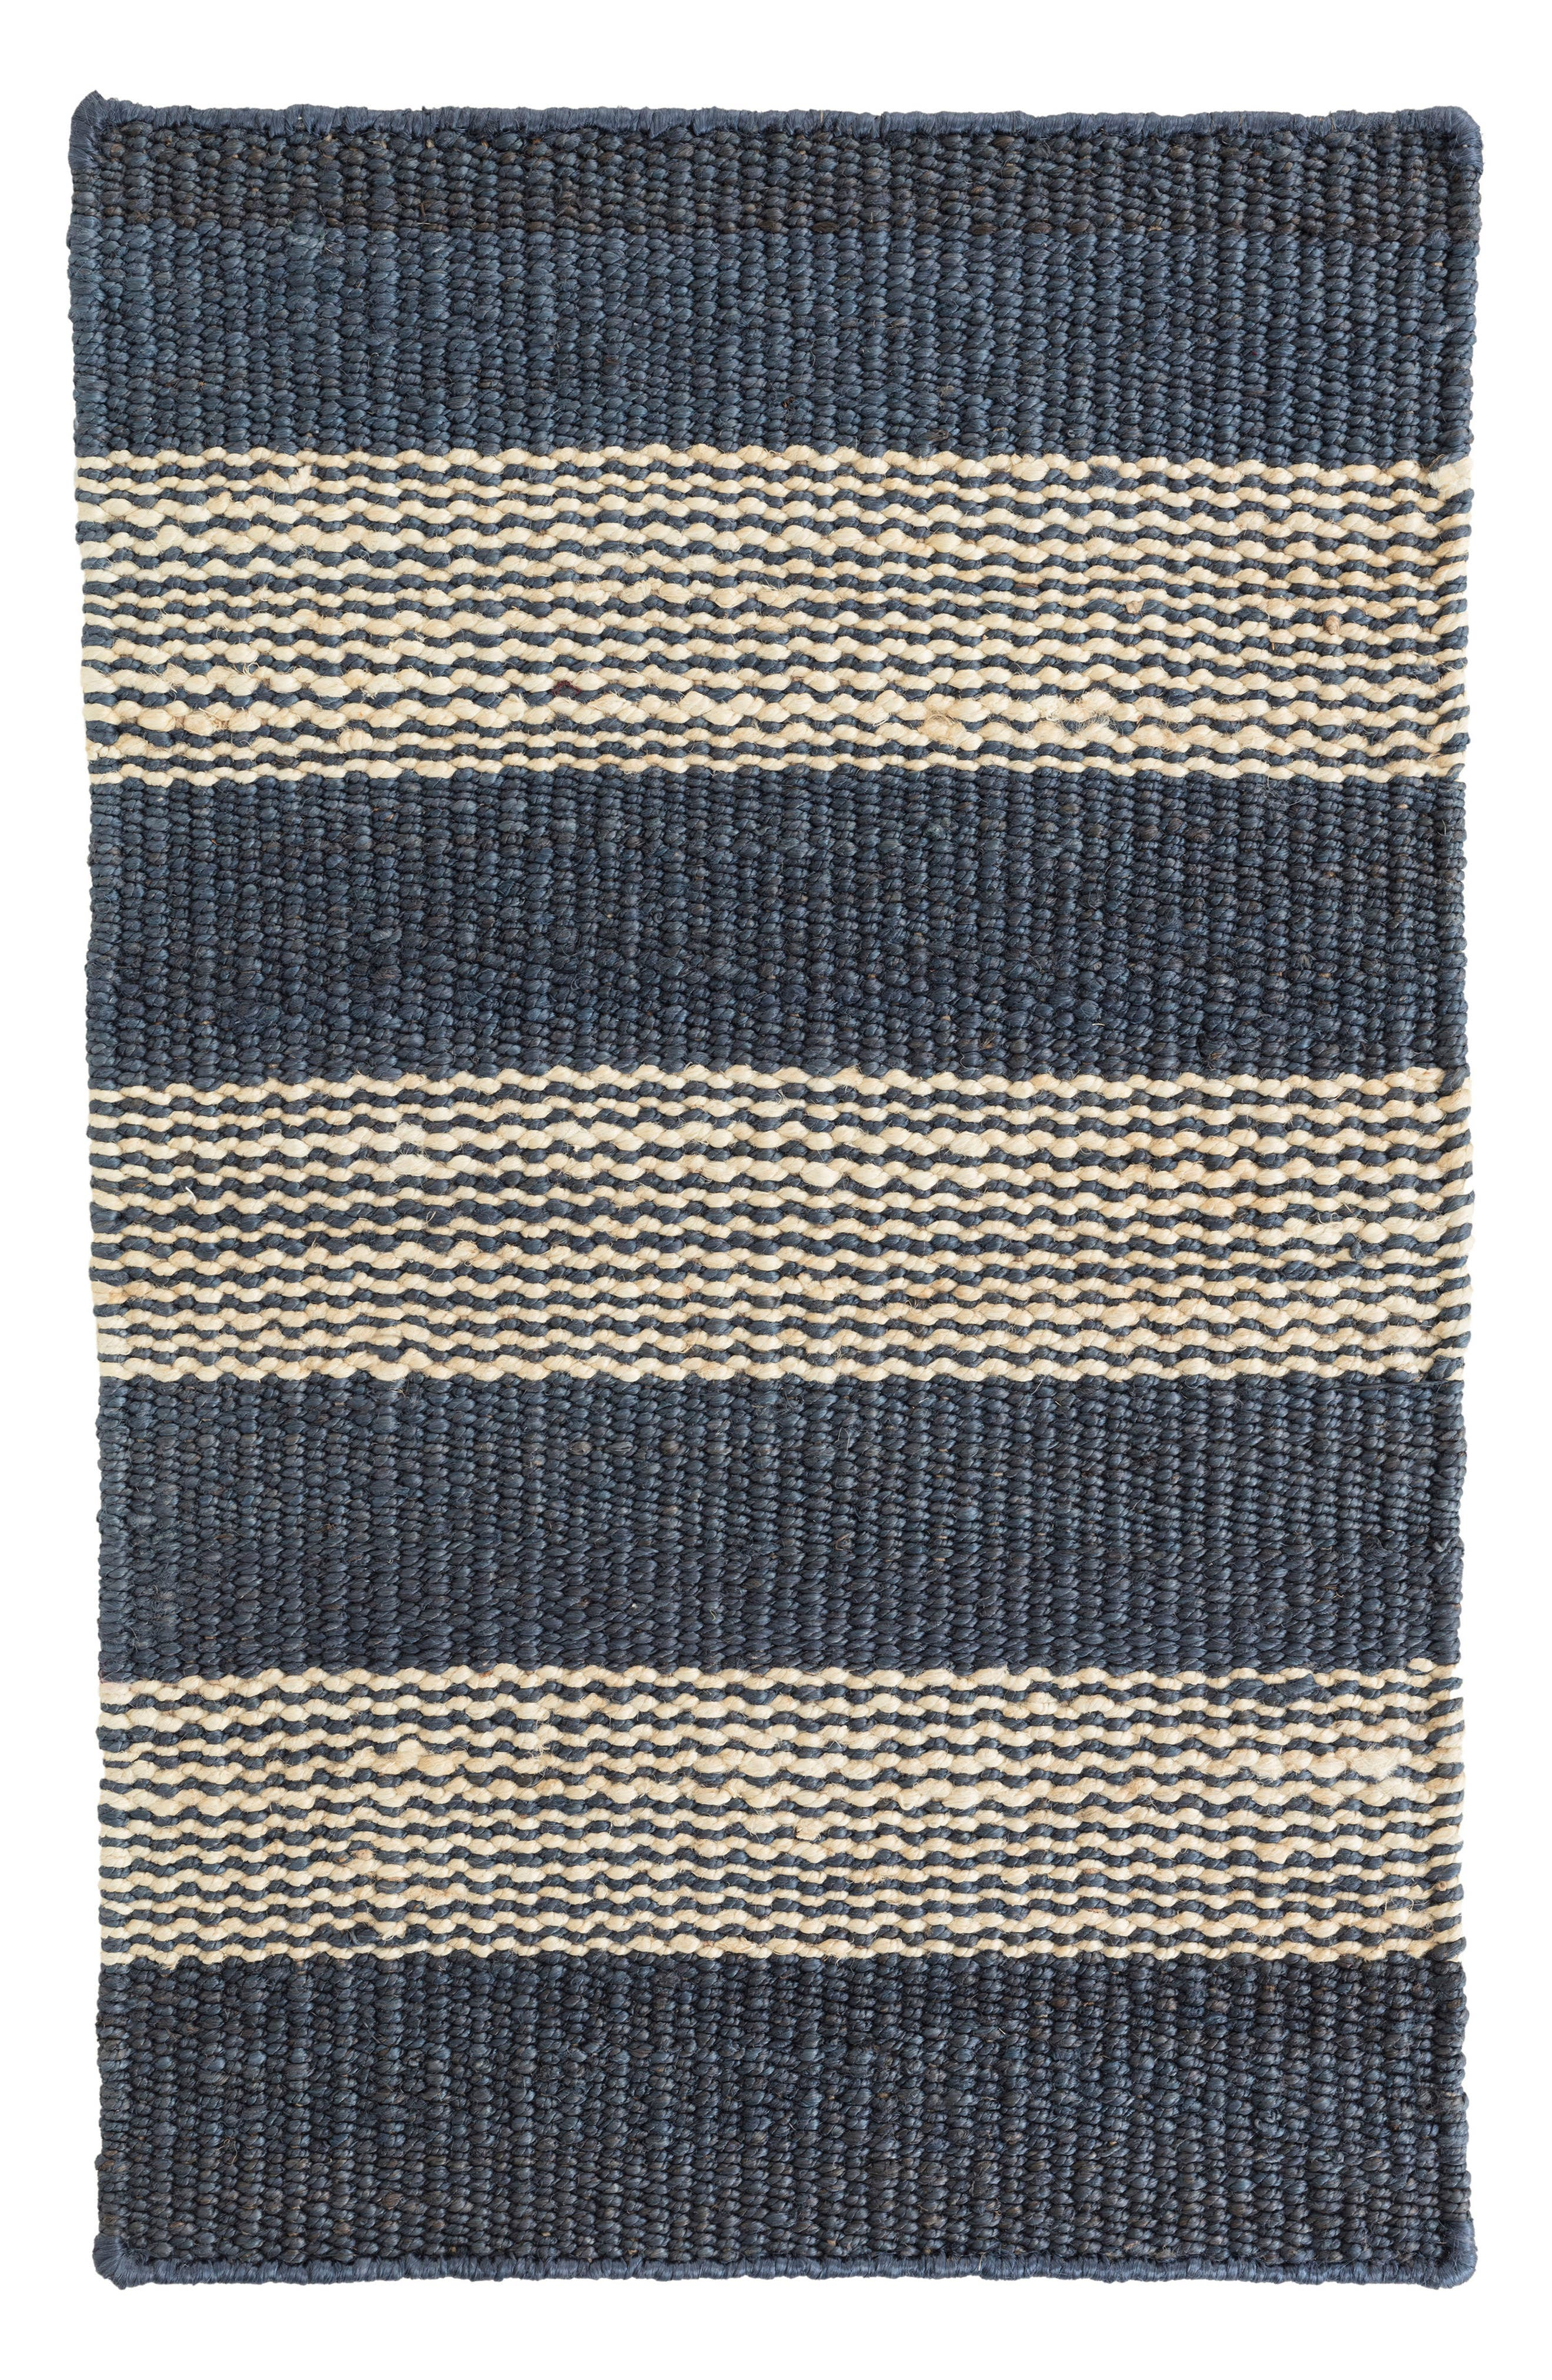 Denim Ticking Woven Rug,                         Main,                         color, Blue